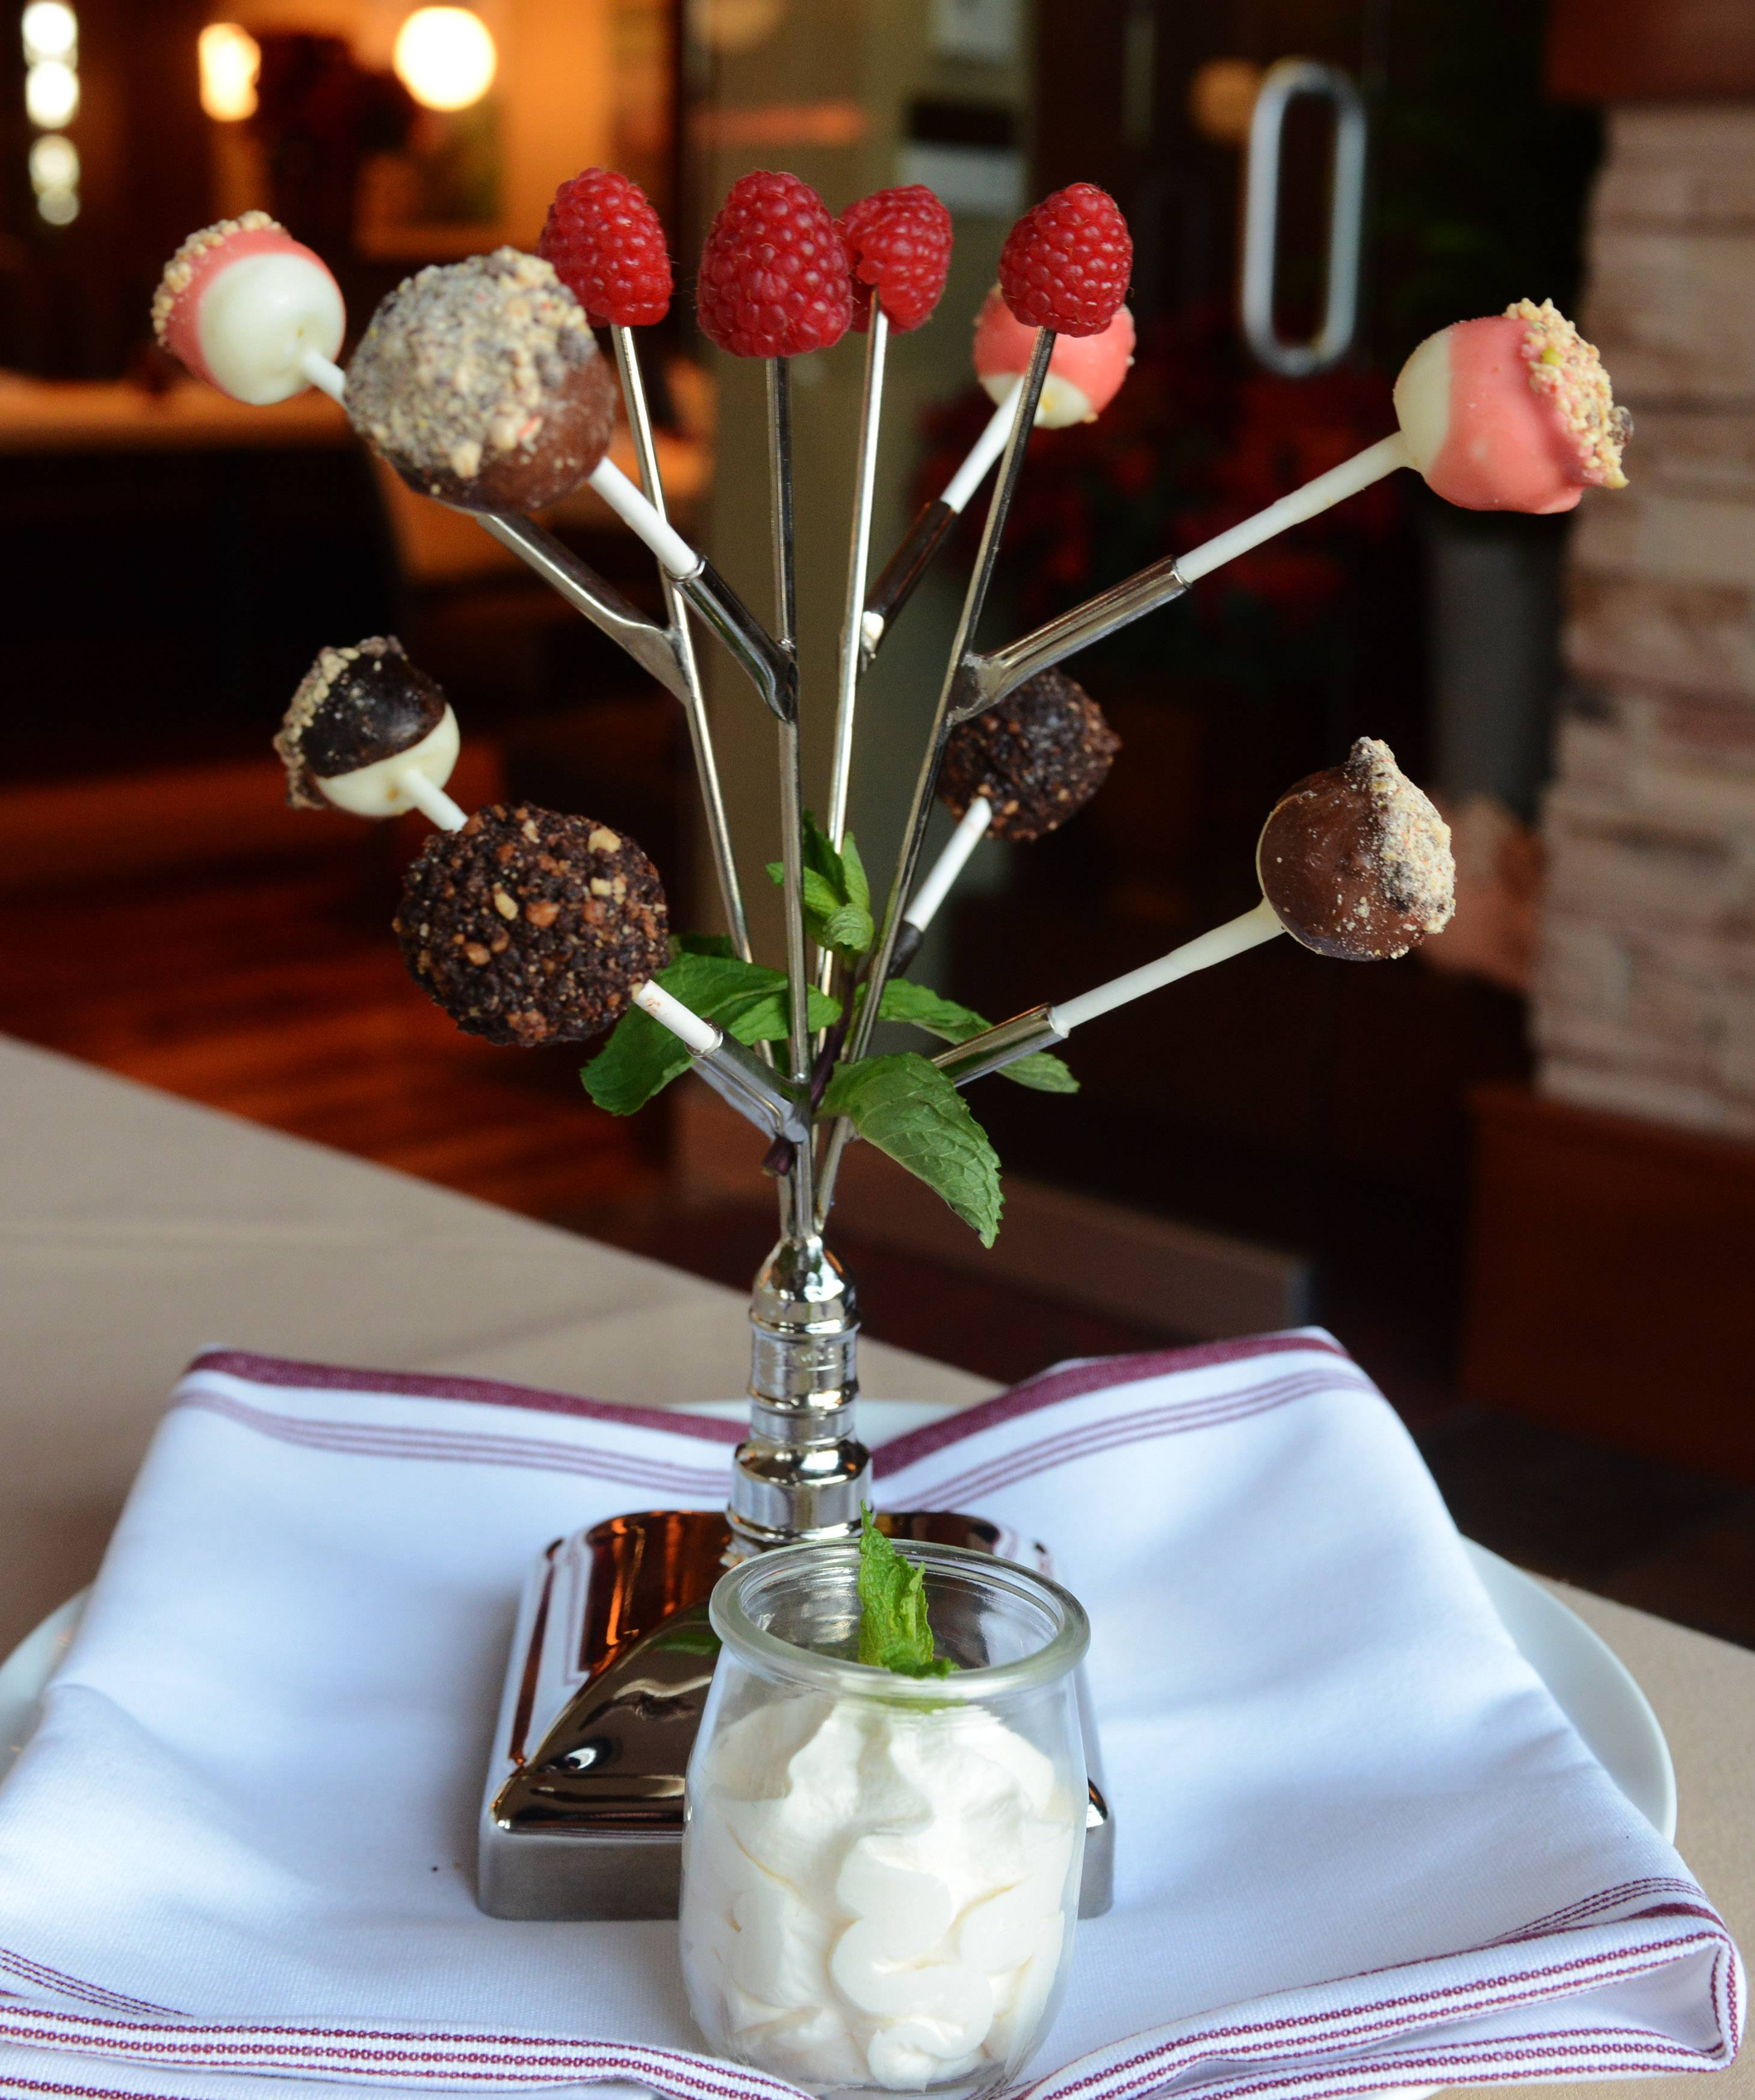 Cake pops come with bubble gum whipped cream at Grillhouse by David Burke in Schaumburg.